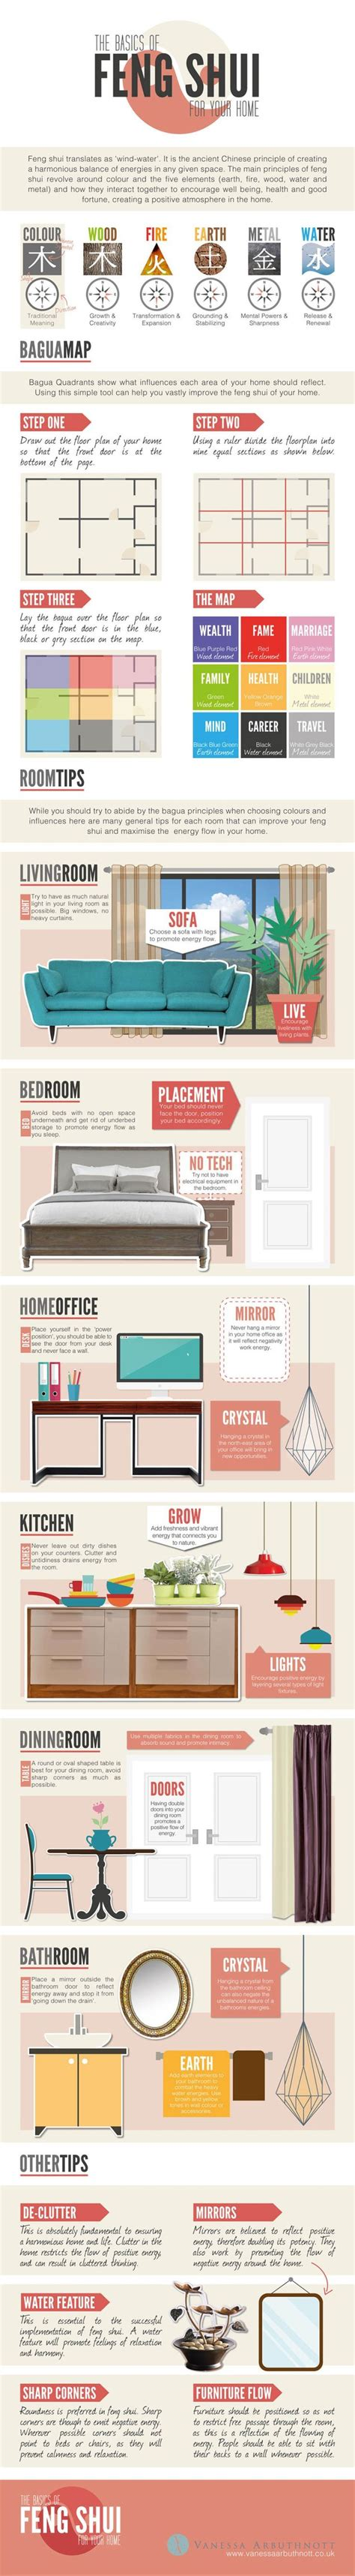 bedroom feng shui placement bedroom layout feng shui 12 home decor i furniture placement pics shuibedroom